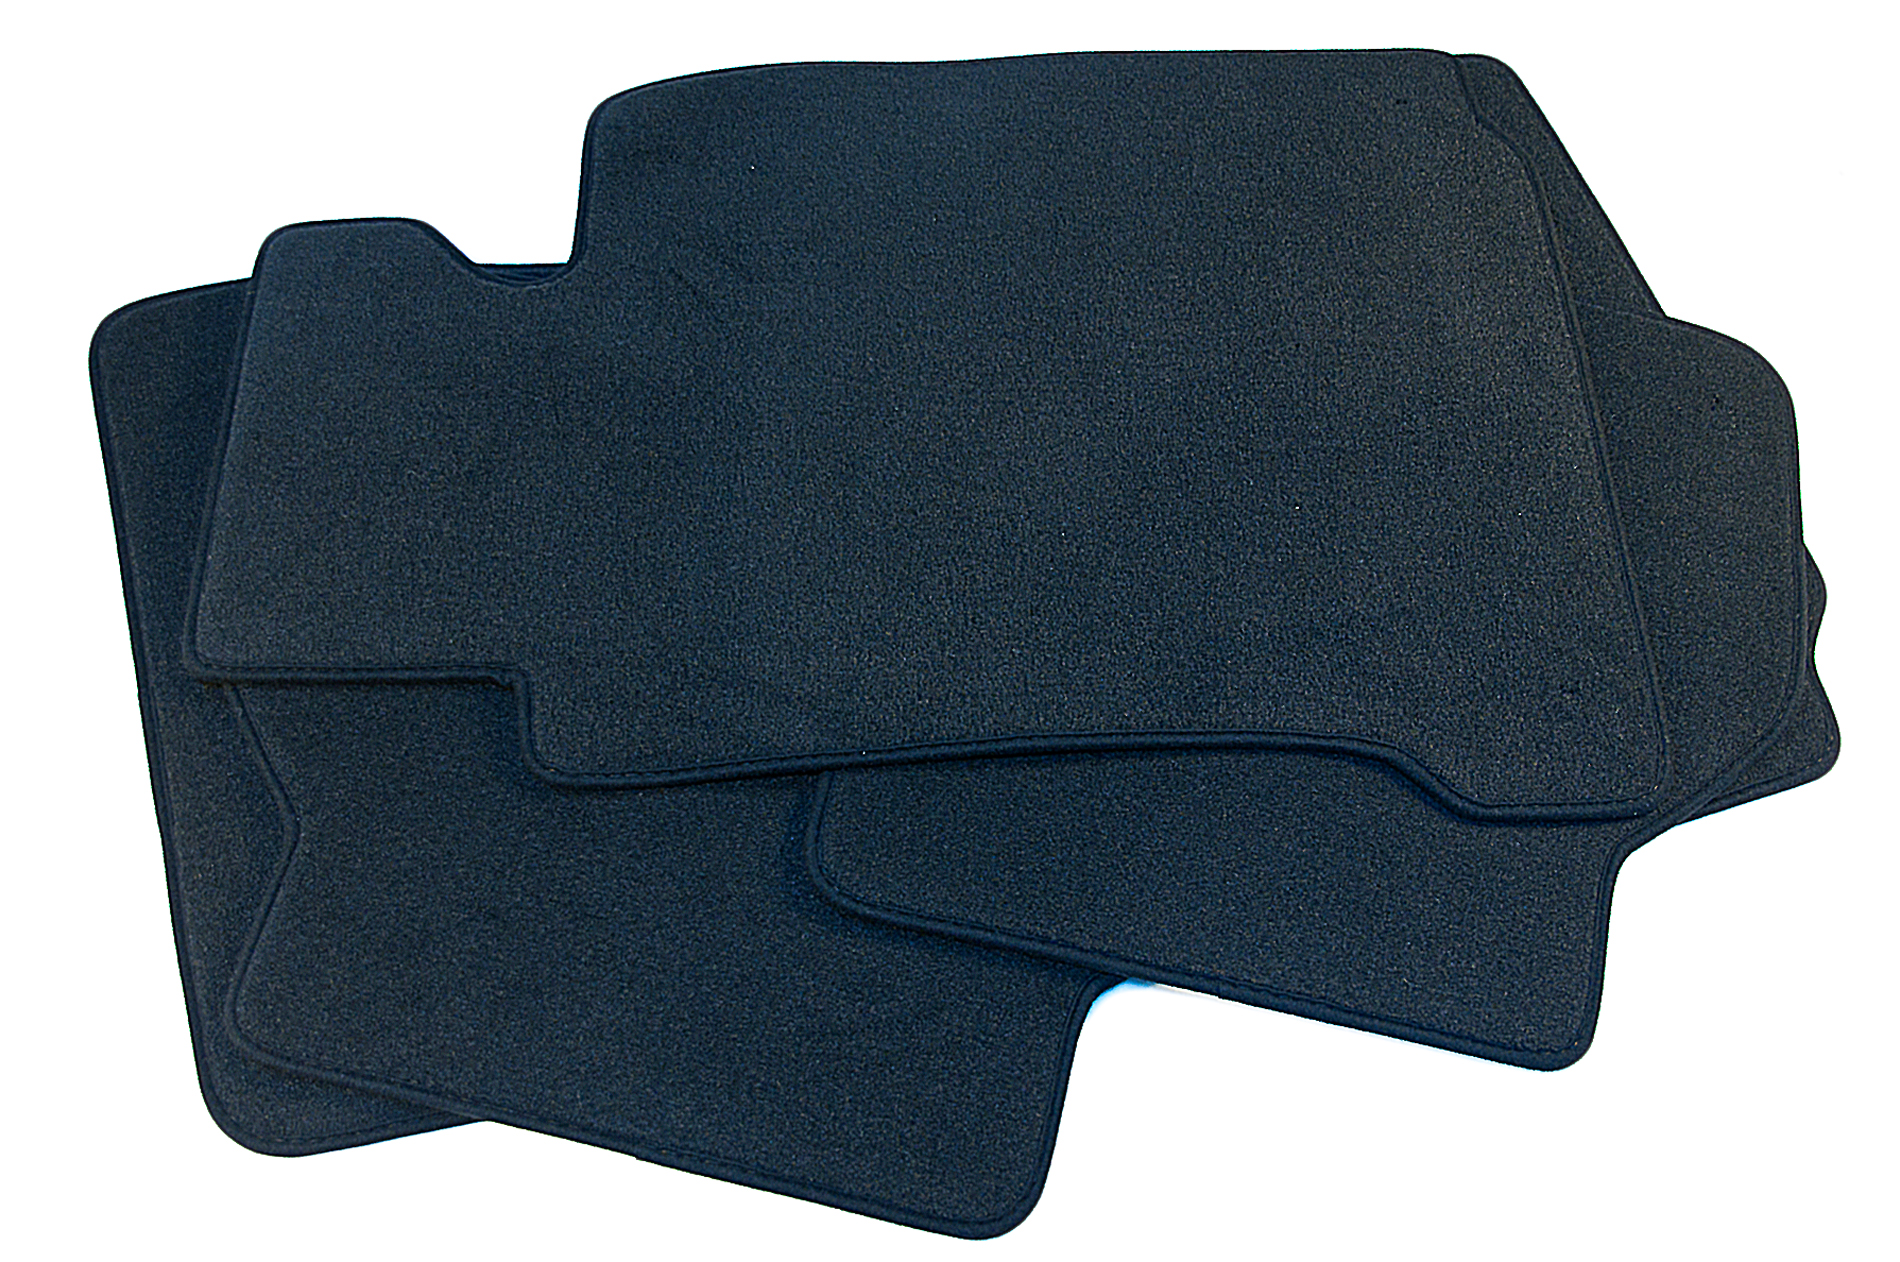 96-03 BMW E39 5 series Tailored Car Mats GREY ANTHRACITE